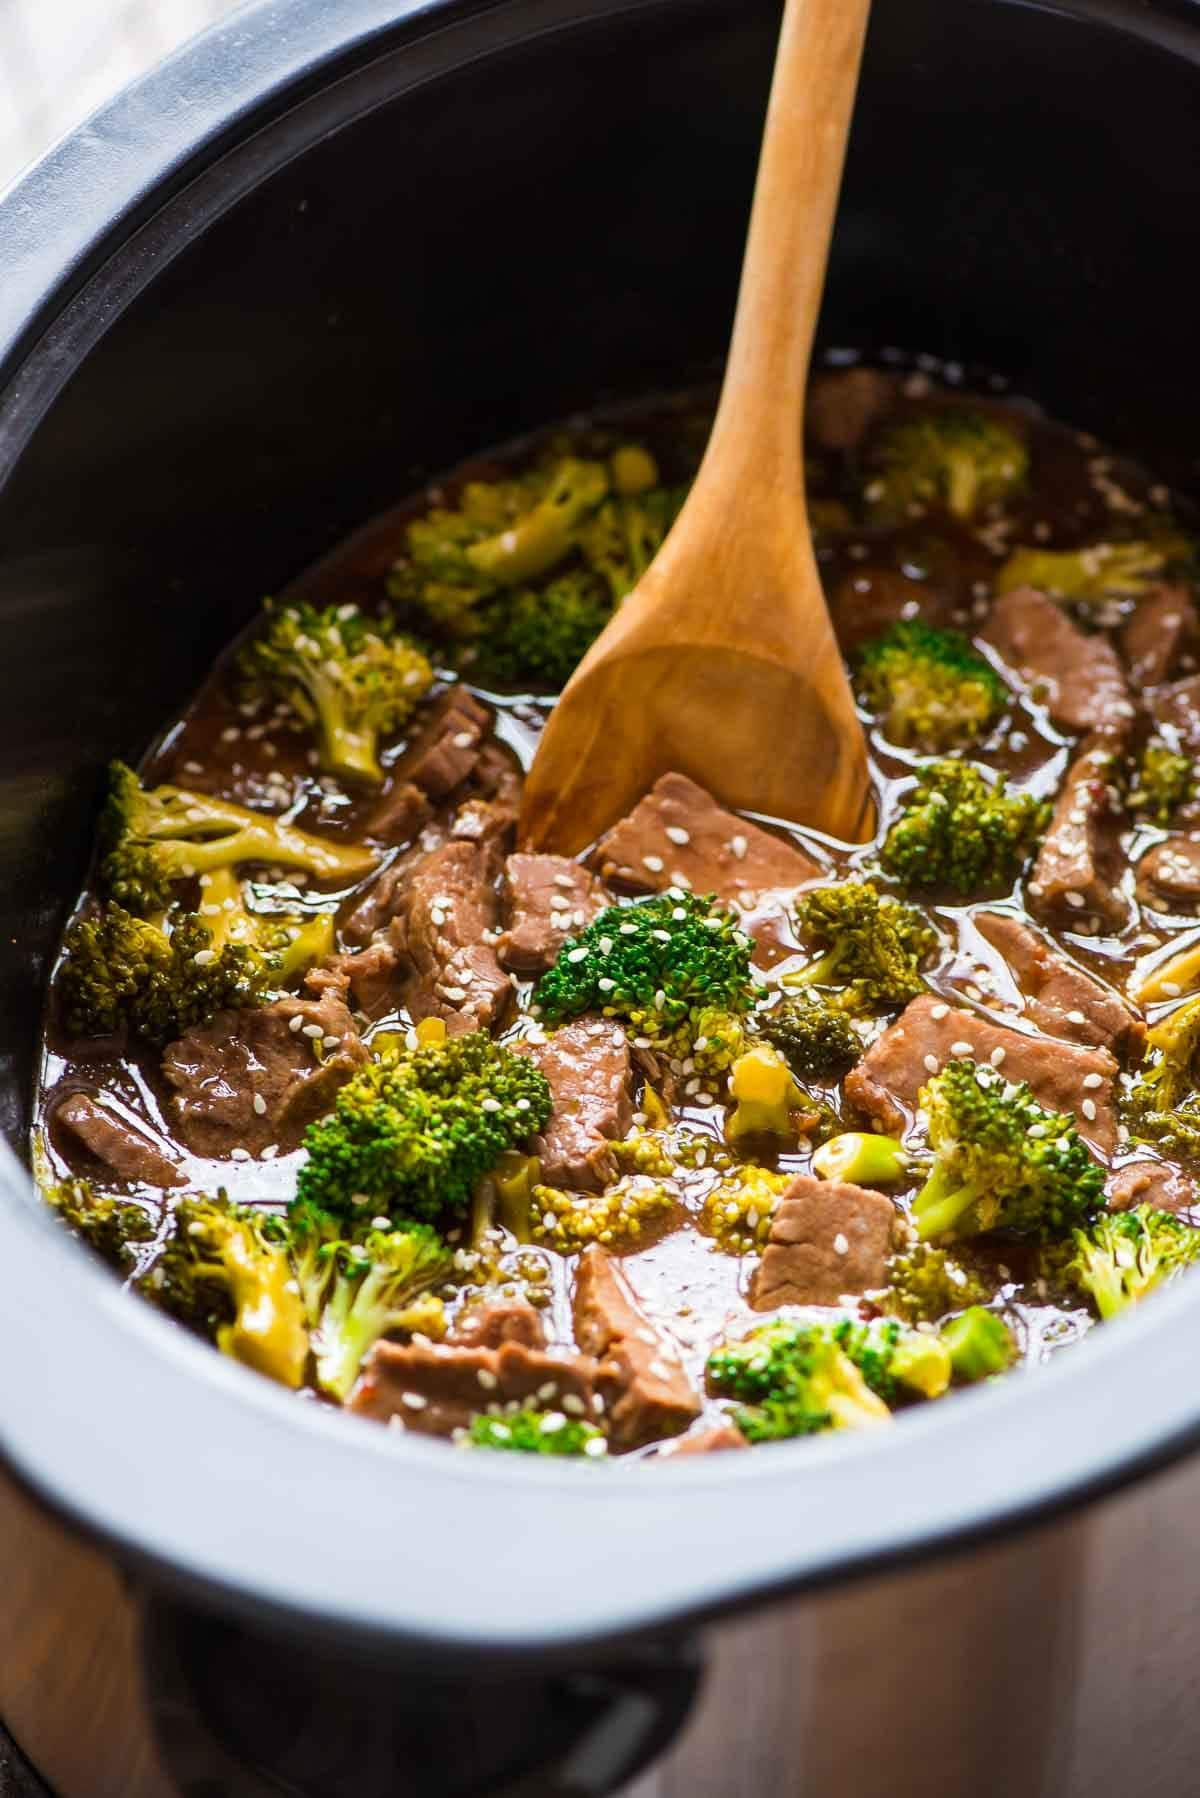 Slow Cooker Beef Recipes Healthy  Slow Cooker Beef and Broccoli